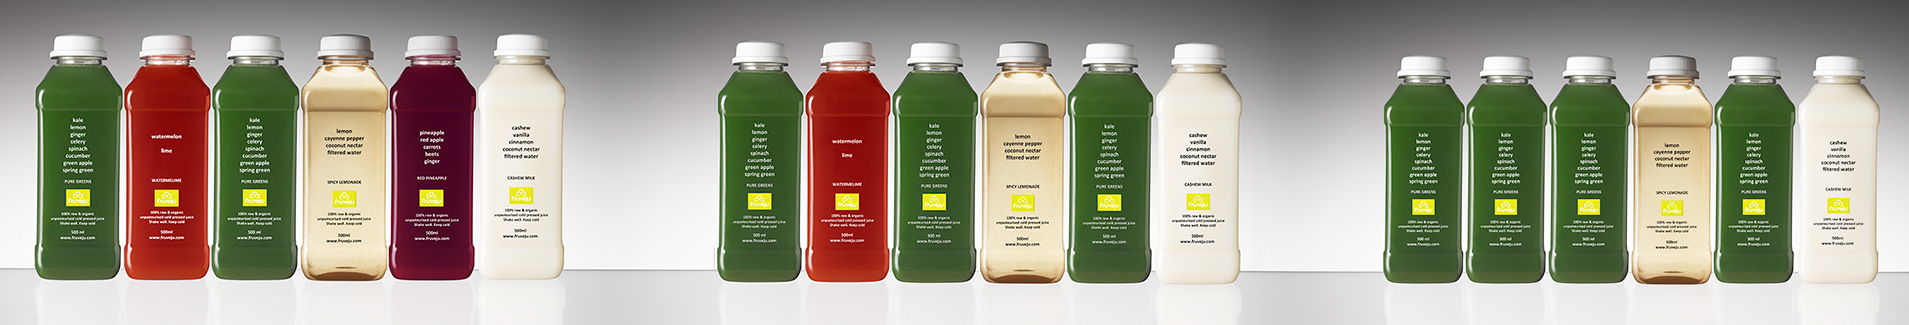 Fruveju Juice Cleanse Levels